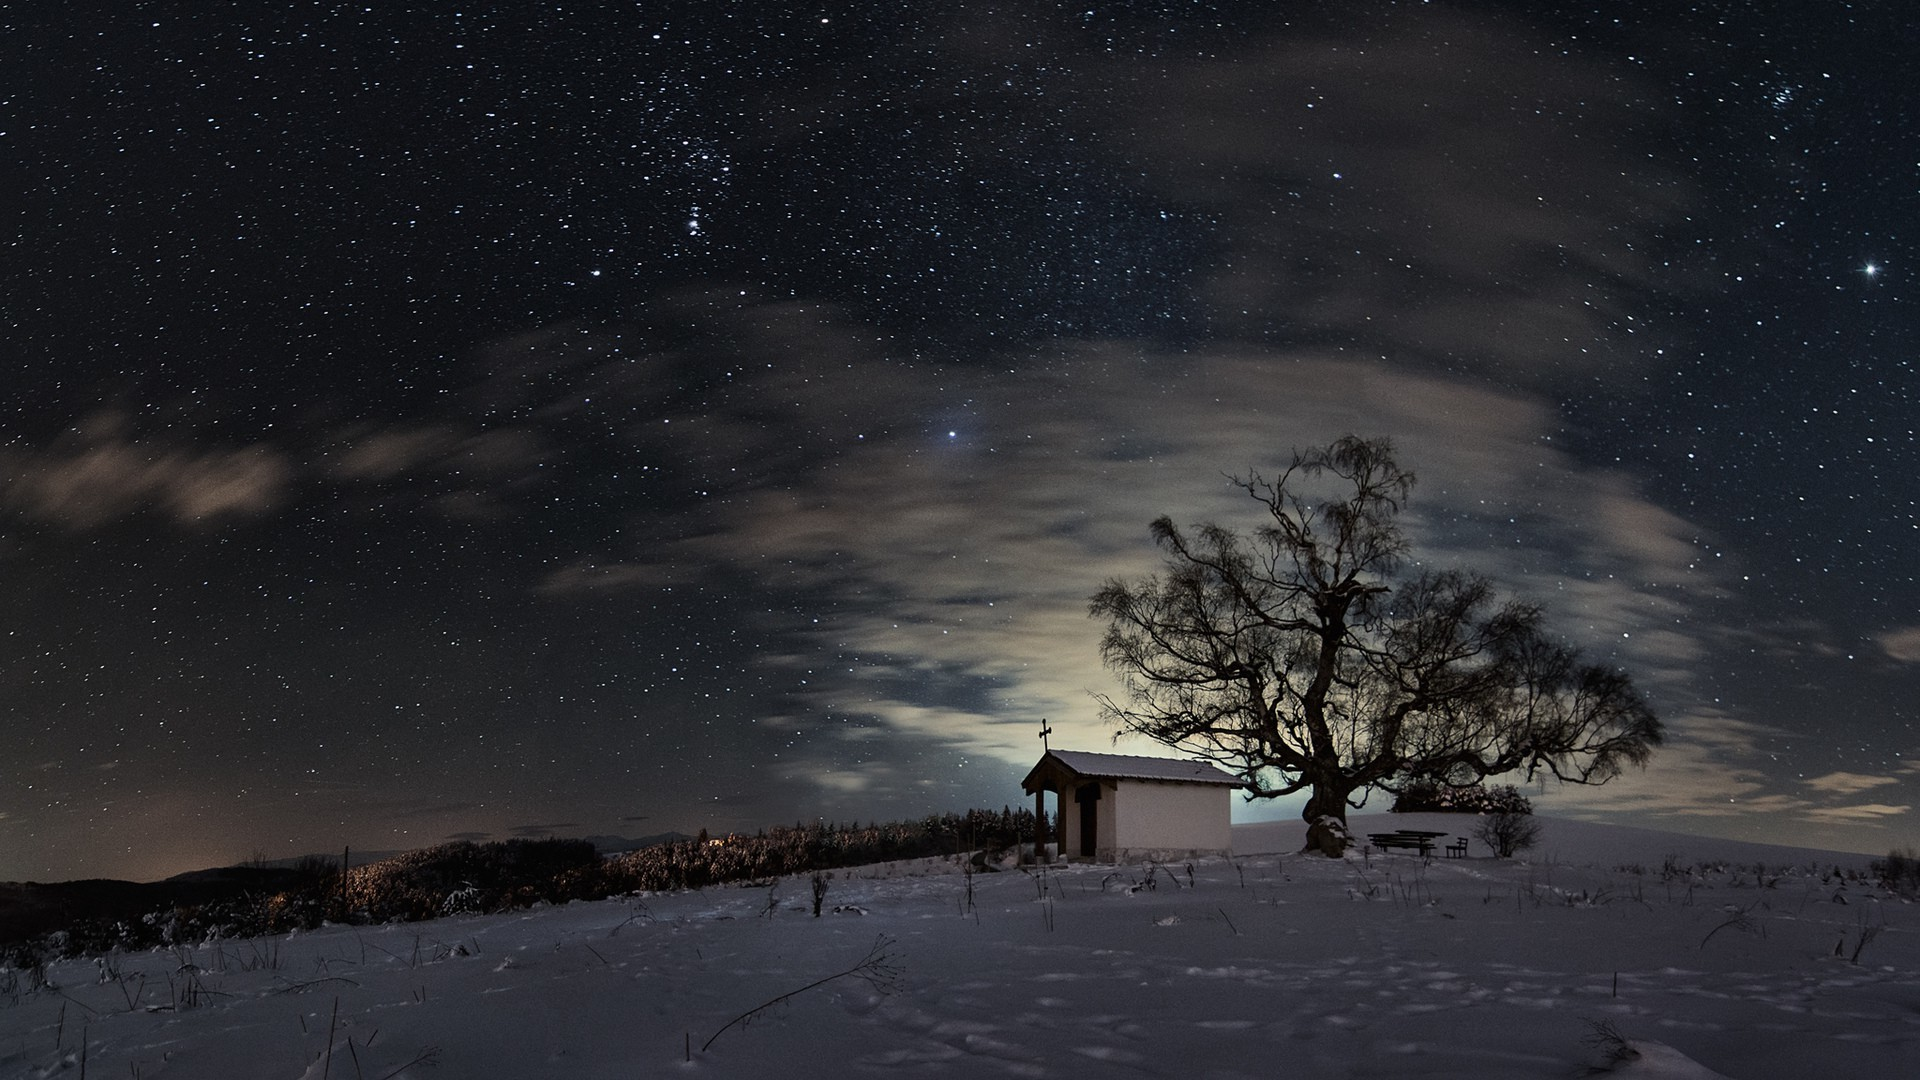 nature, Trees, Forest, Branch, Landscape, Winter, Snow, Clouds, Night, Sky,  Stars, Church, Cross, Lights, Hill, Footprints, Bench, Long Exposure  Wallpapers …